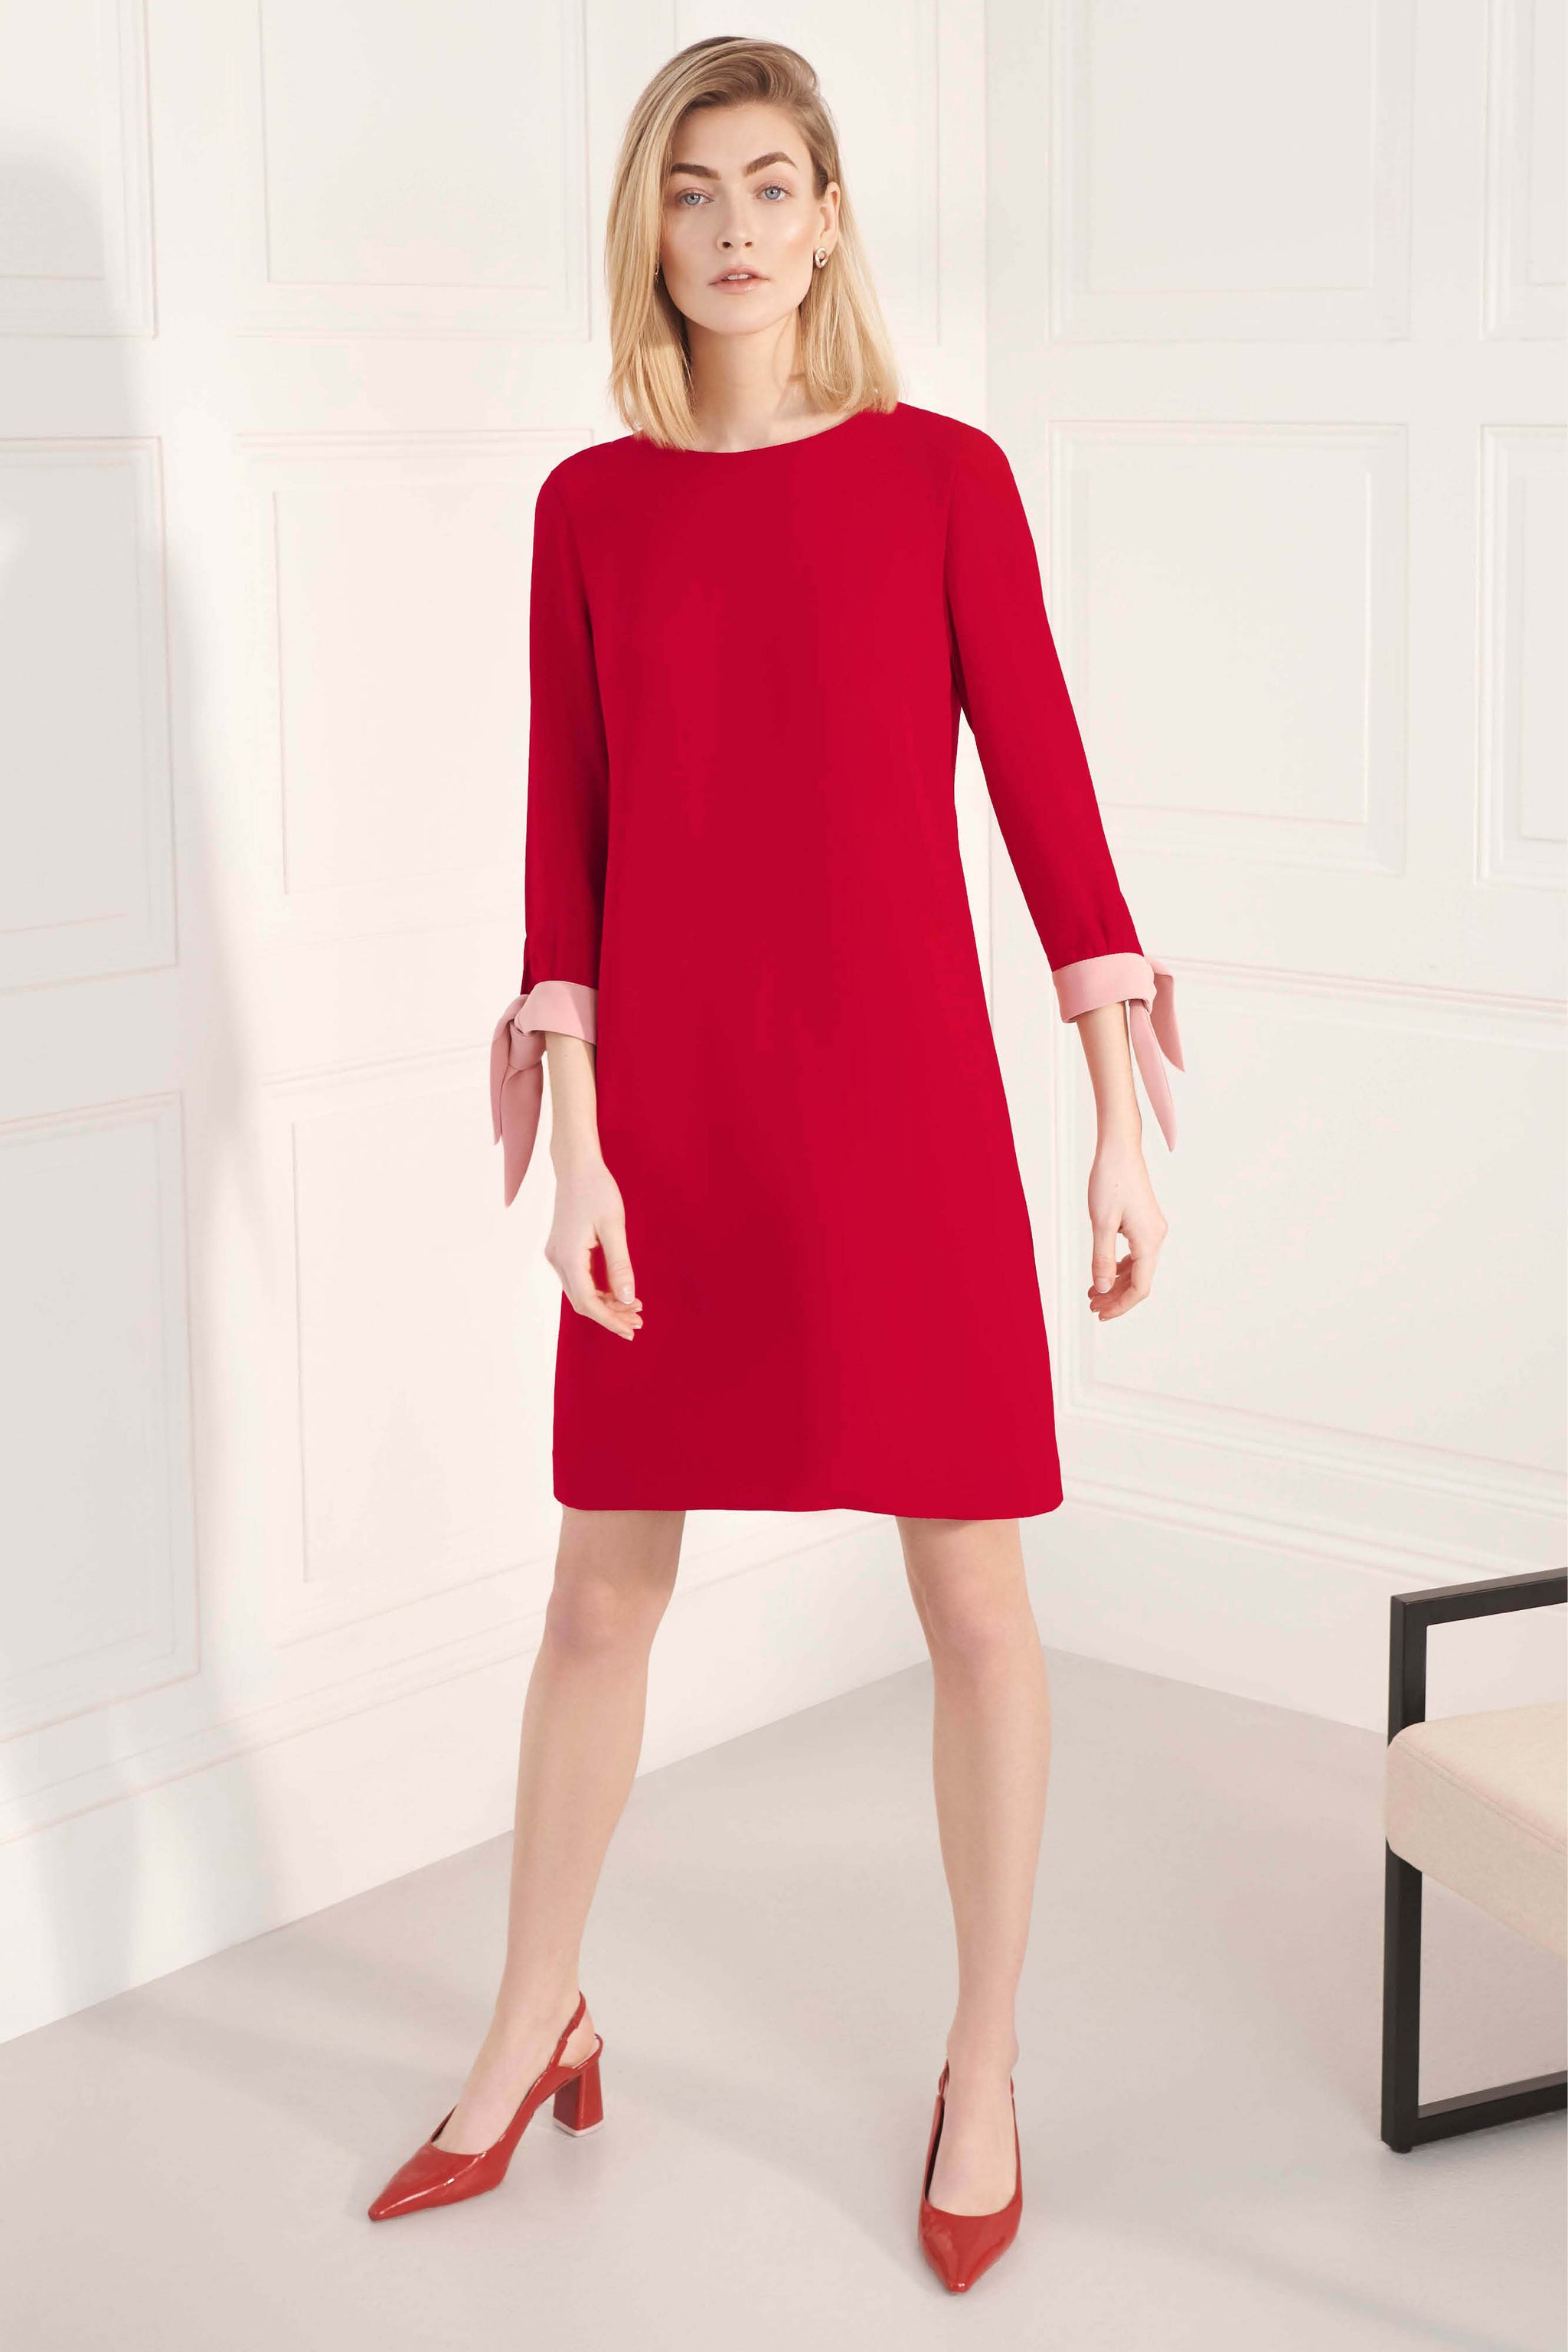 Padstow Red and Pink Dress